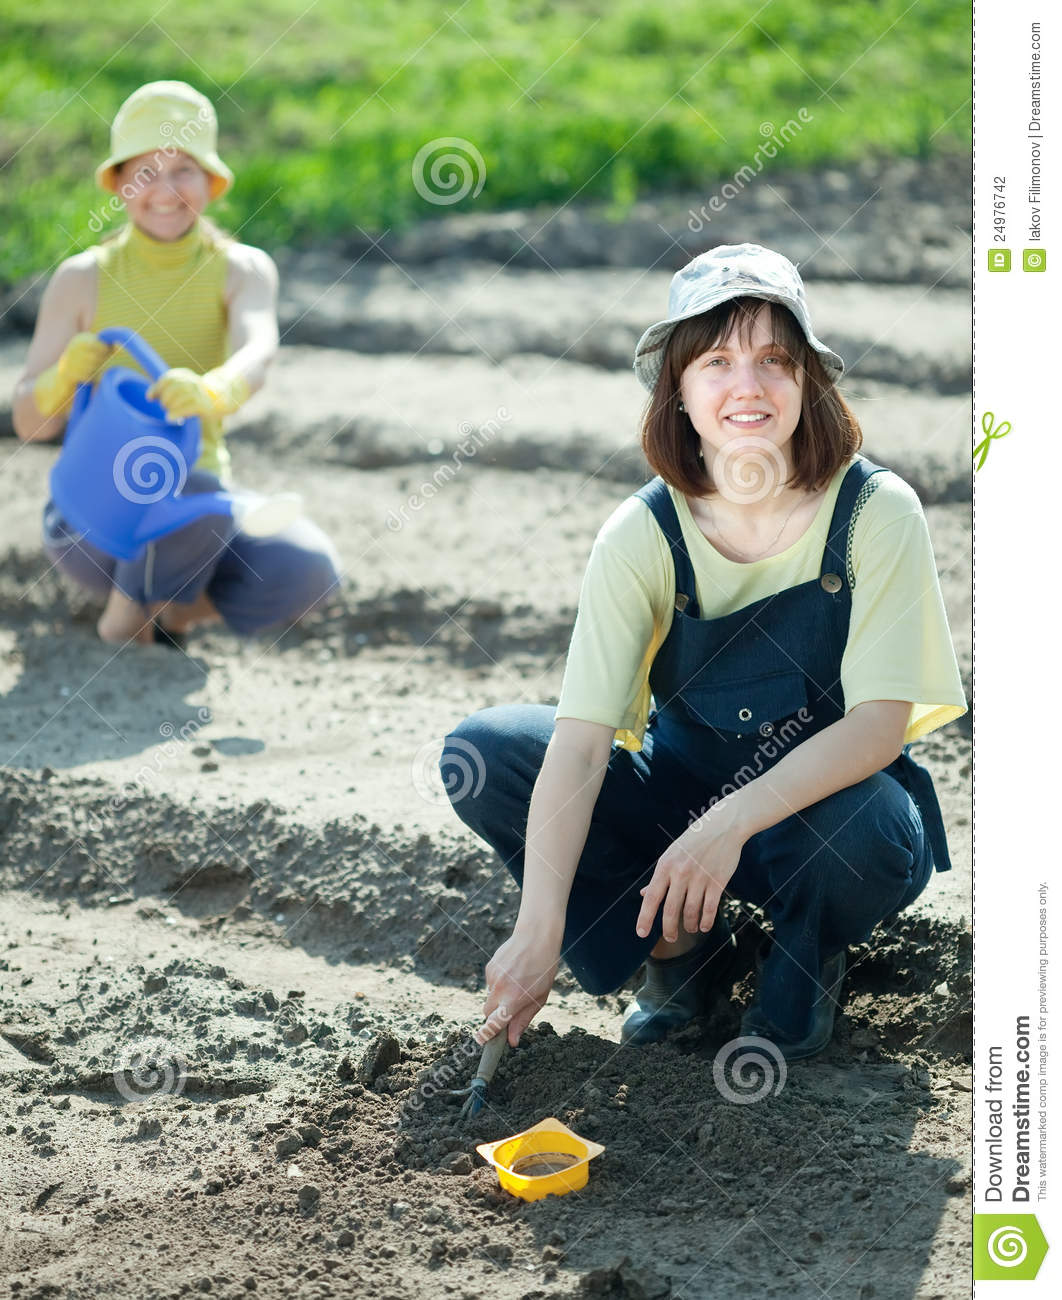 Women sows seeds in soil stock photography image 24976742 for Soil 7t7 woman